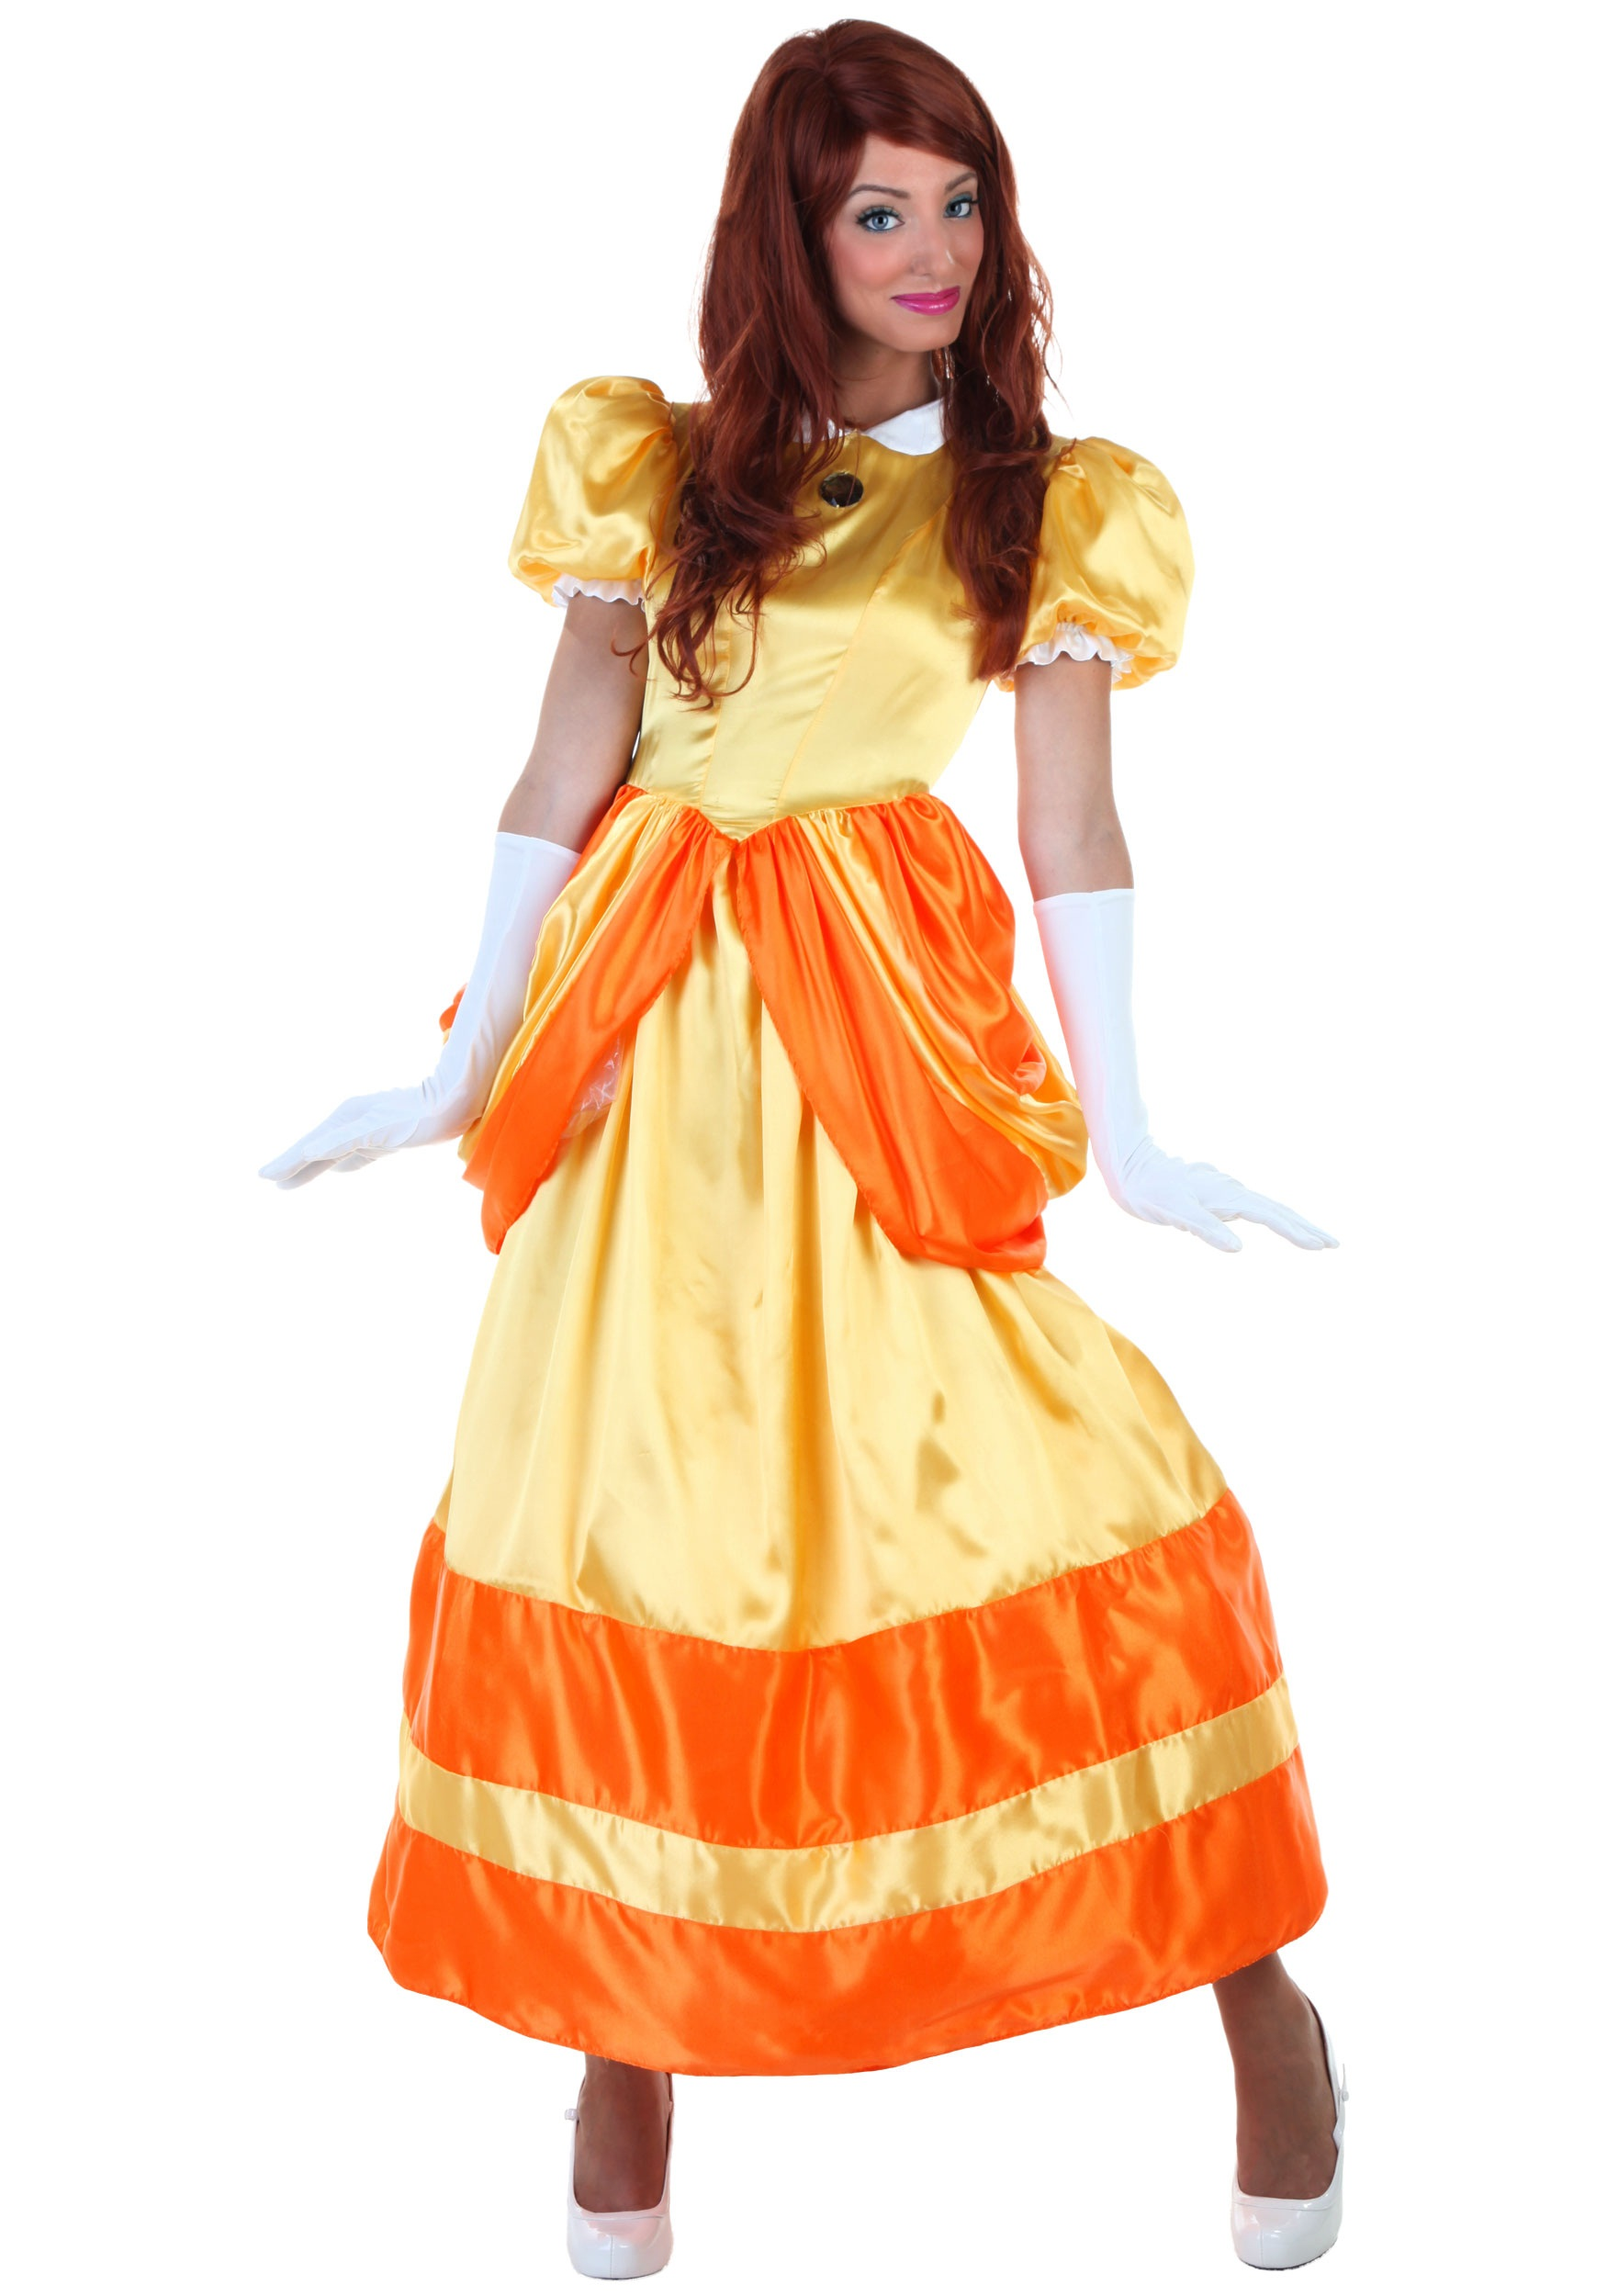 Princess Daffodil Womens Costume  sc 1 st  Fun.com & Princess Daffodil Costume for Women